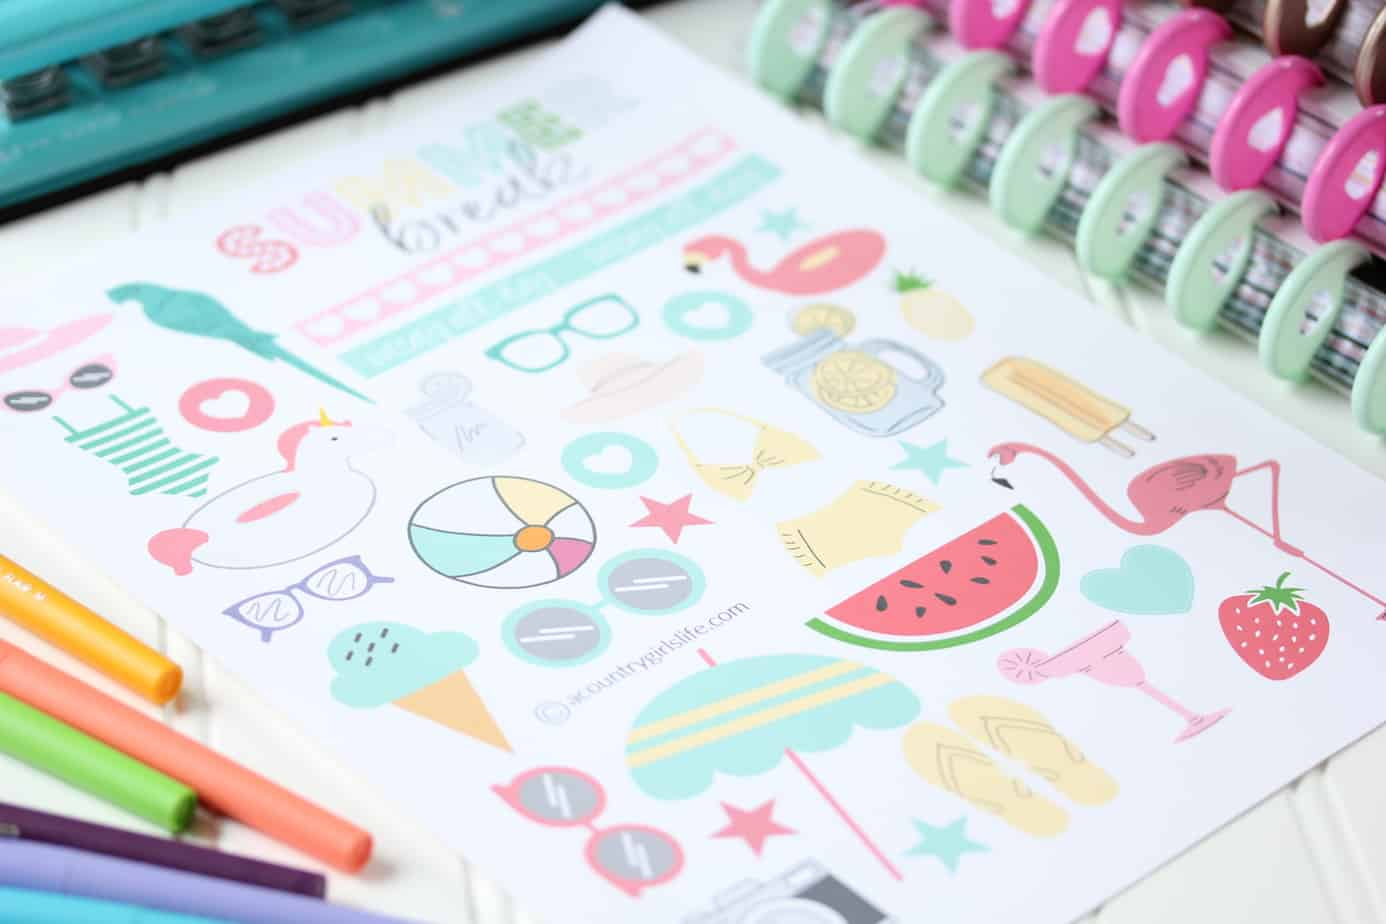 graphic relating to Free Happy Planner Printables referred to as Absolutely free Printable Planner Stickers for Your Content Planner - A